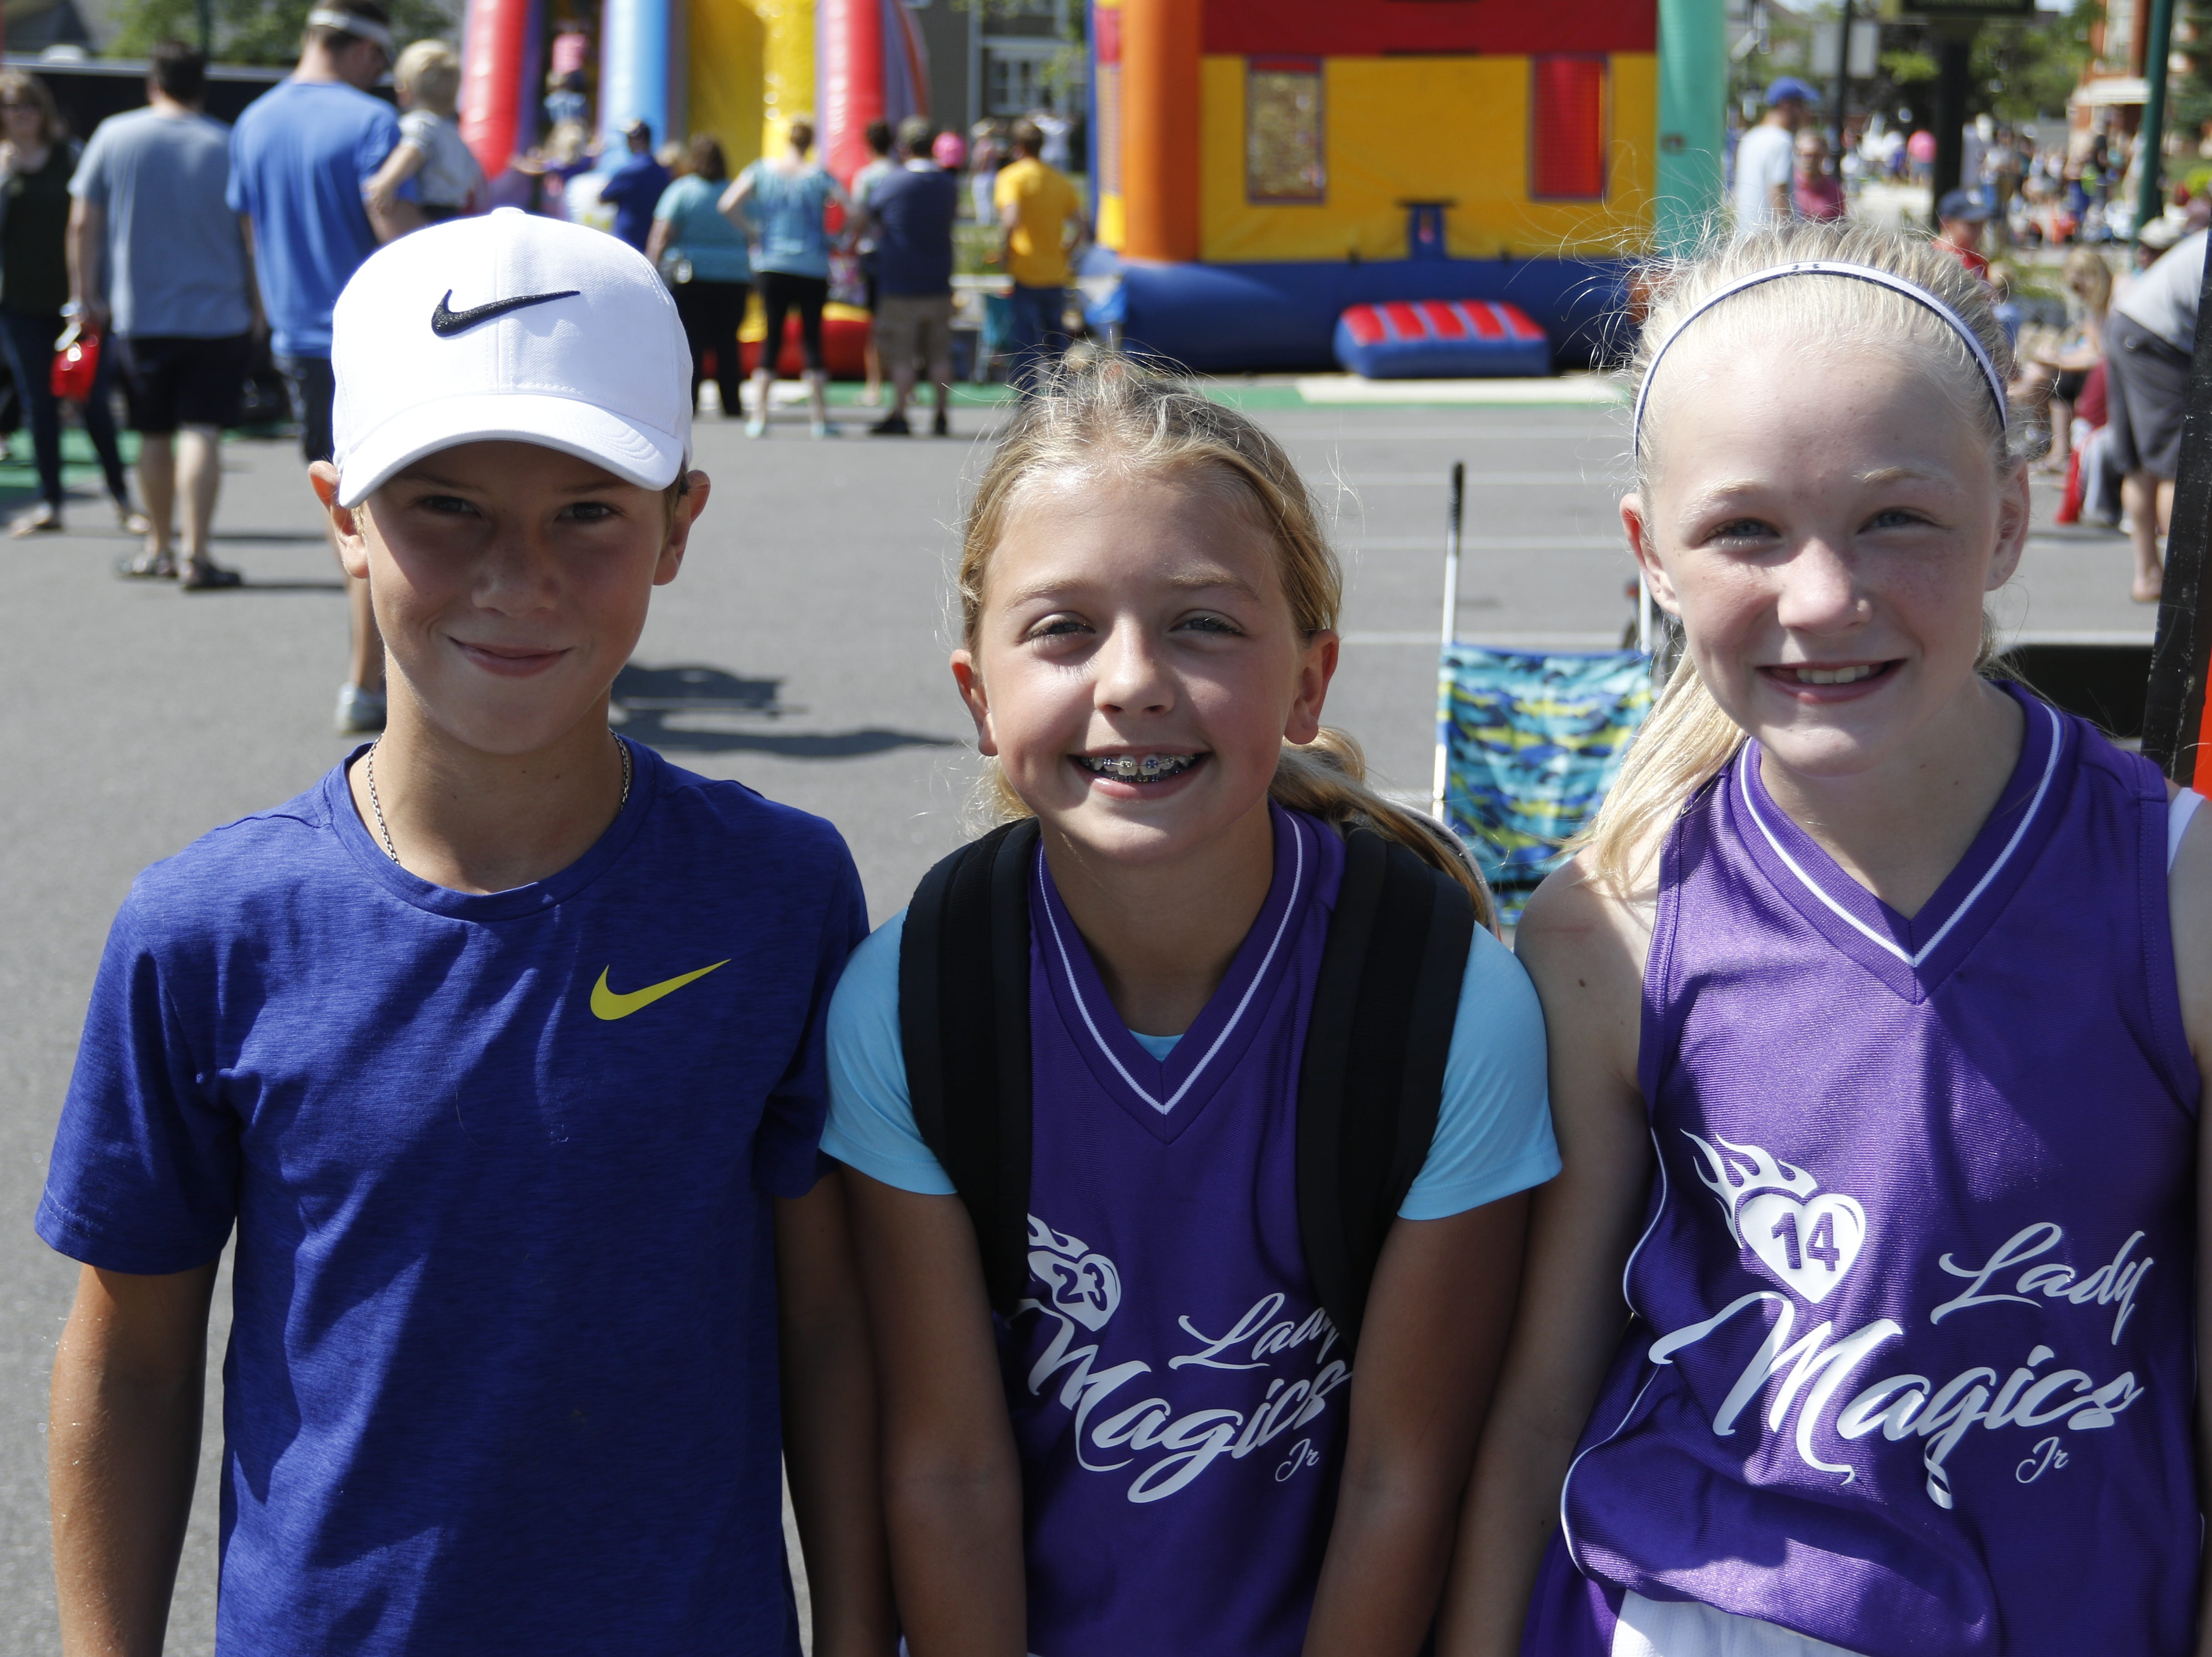 Carter Drexler, 11, left, McKenzie Holm, 11 and Delaney Varsho, 11, pose for a photo at Hub City Days in downtown Marshfield Saturday, July 28, 2018.